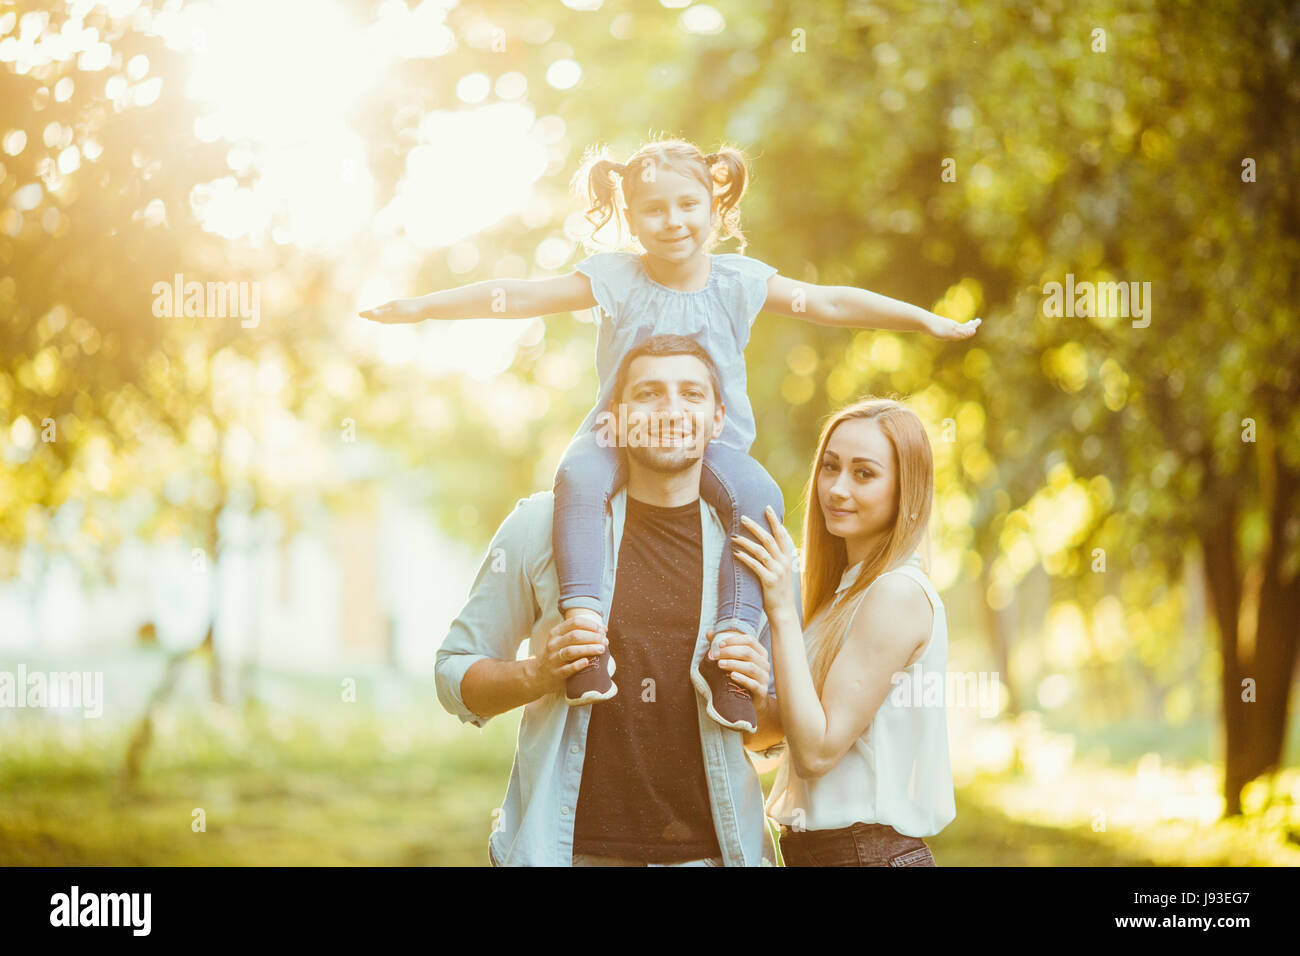 family Mom and Dad holding daughter on his back and have fun in the park. - Stock Image